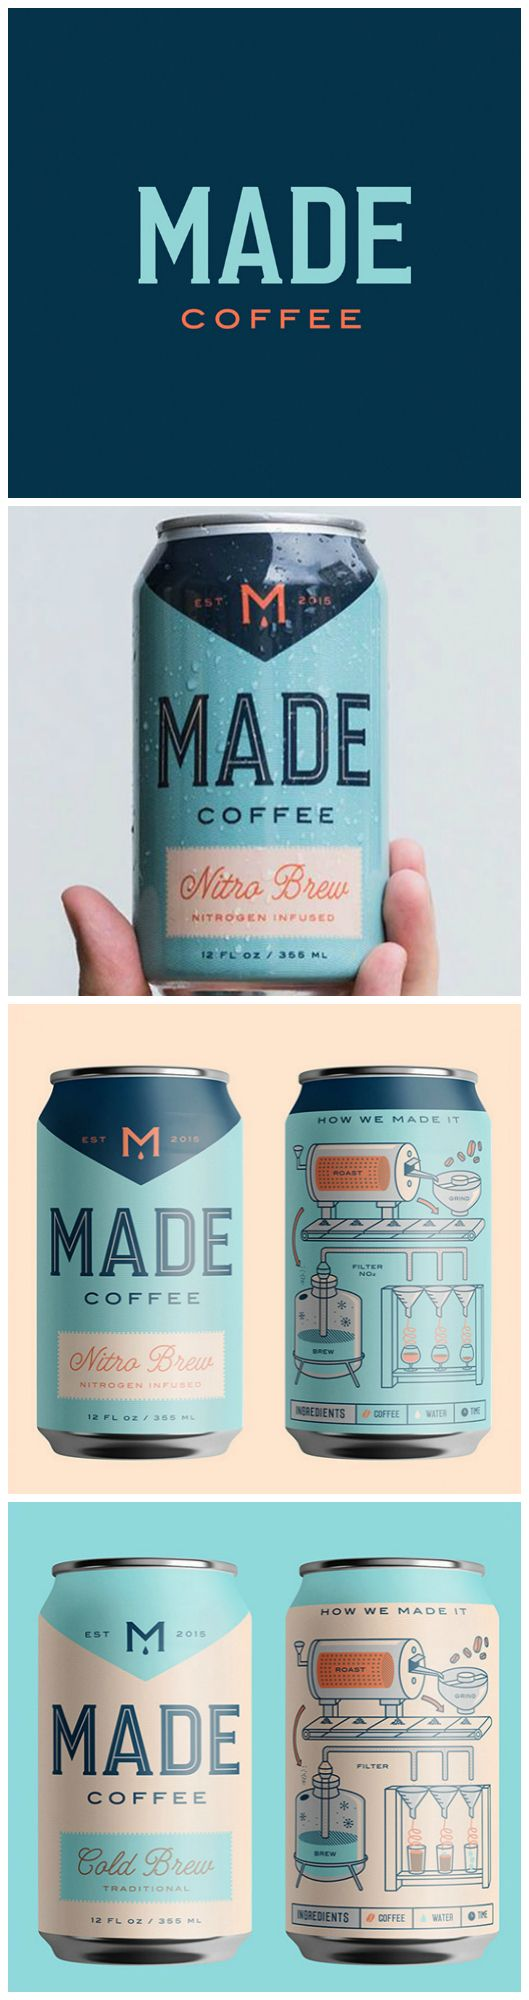 Downtown St. Petersburg, Tampa Bay Area Coffee Rebranding  Designed by:Hype Group Project Name:Made Coffee Category:#Beverages #drink #coffee